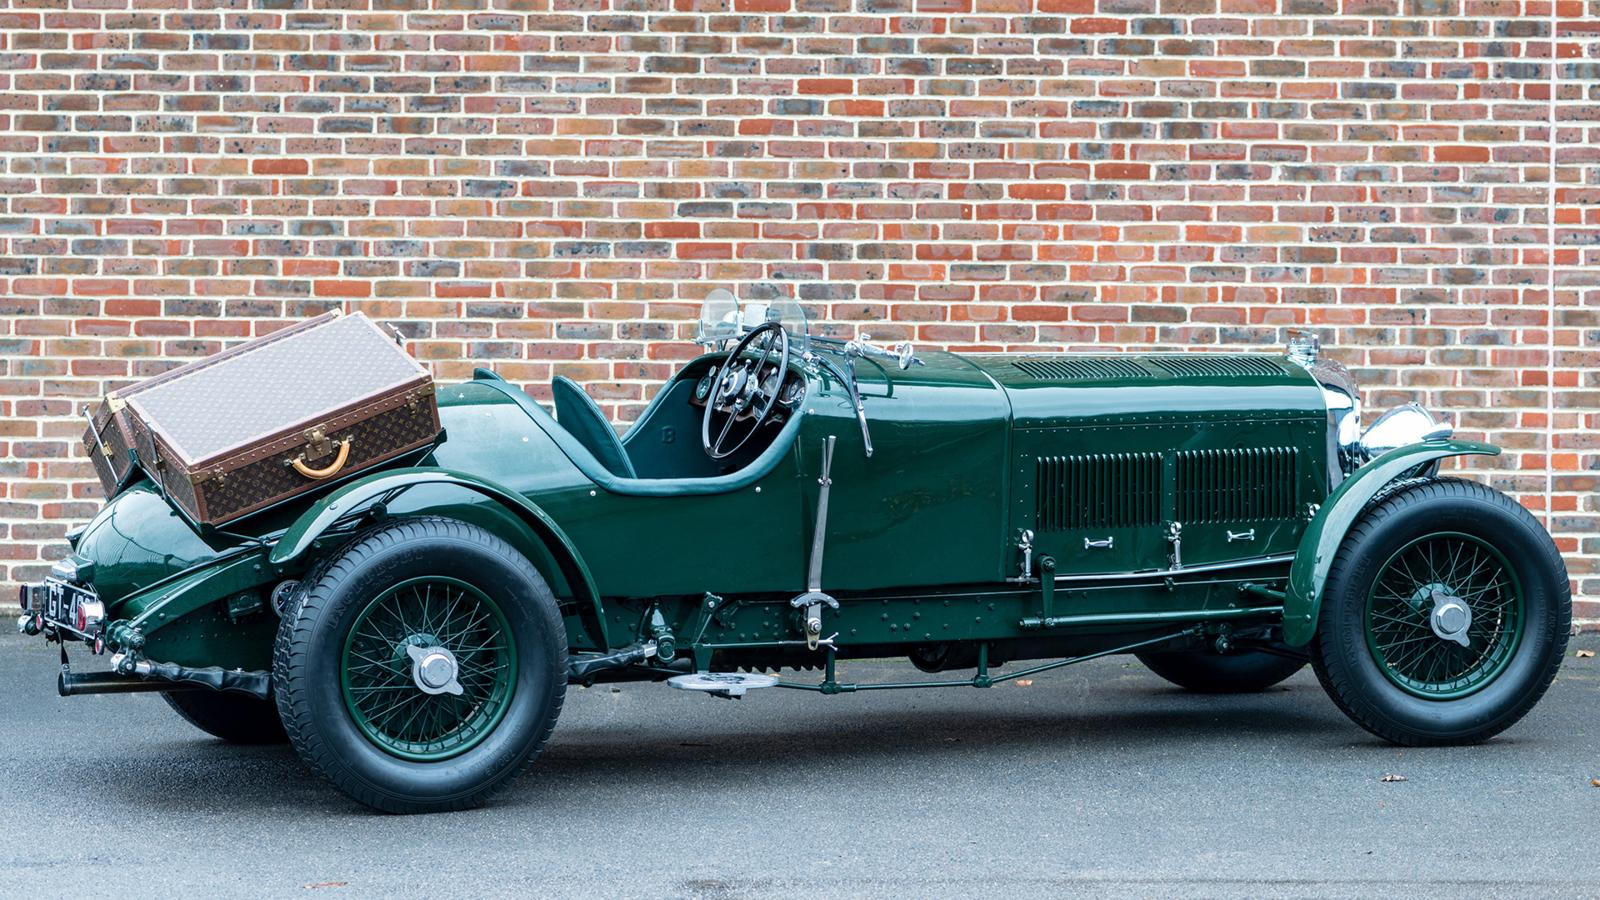 Rare Bentley With Vintage Louis Vuitton Luggage Is Up For